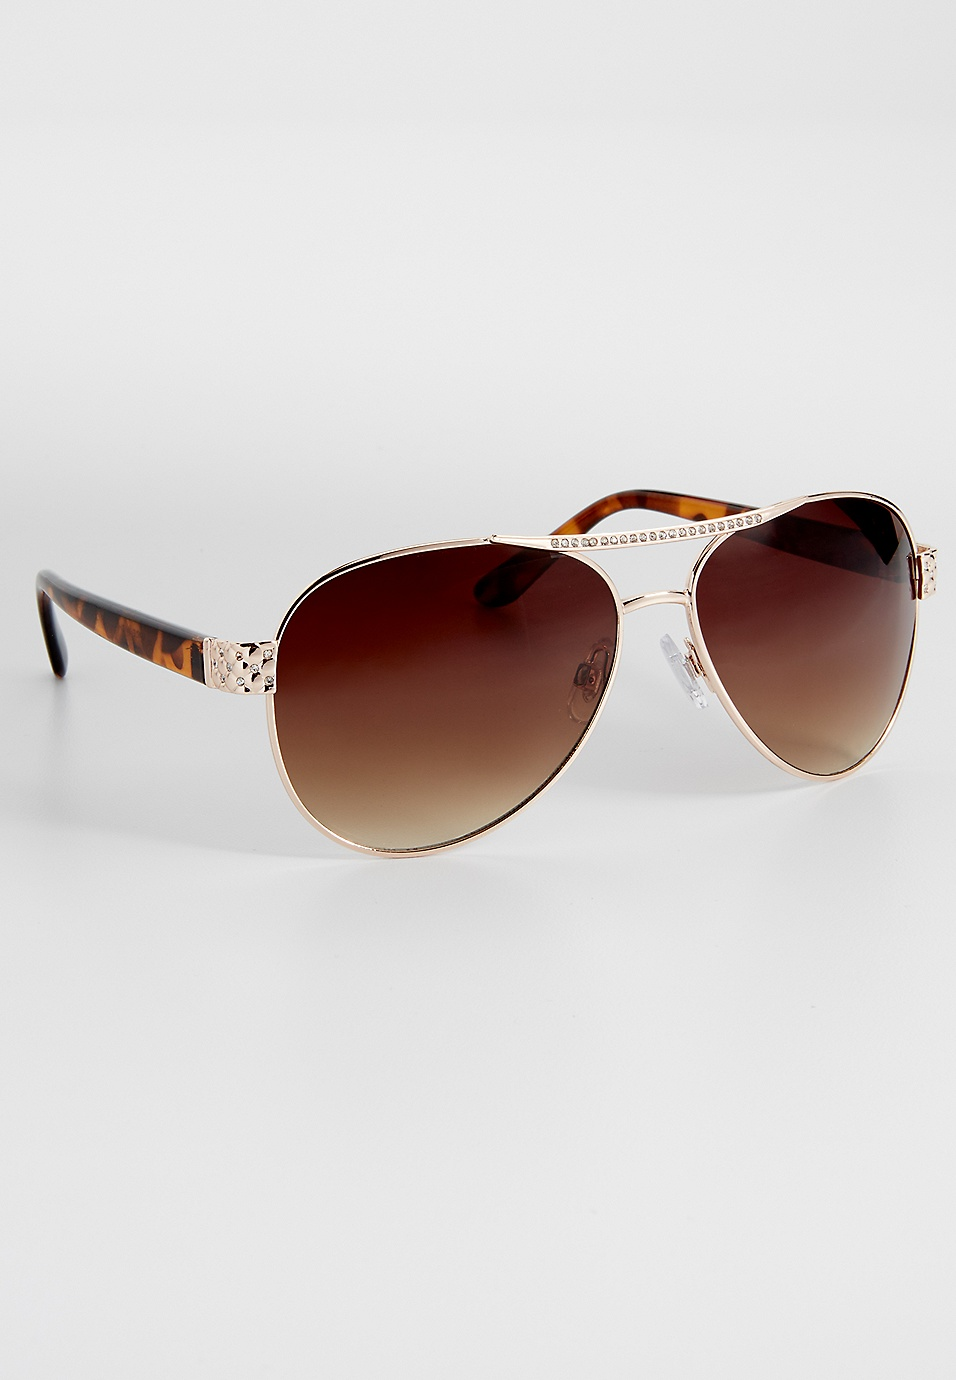 8a8dfdbf55eb aviator sunglasses with rhinestones